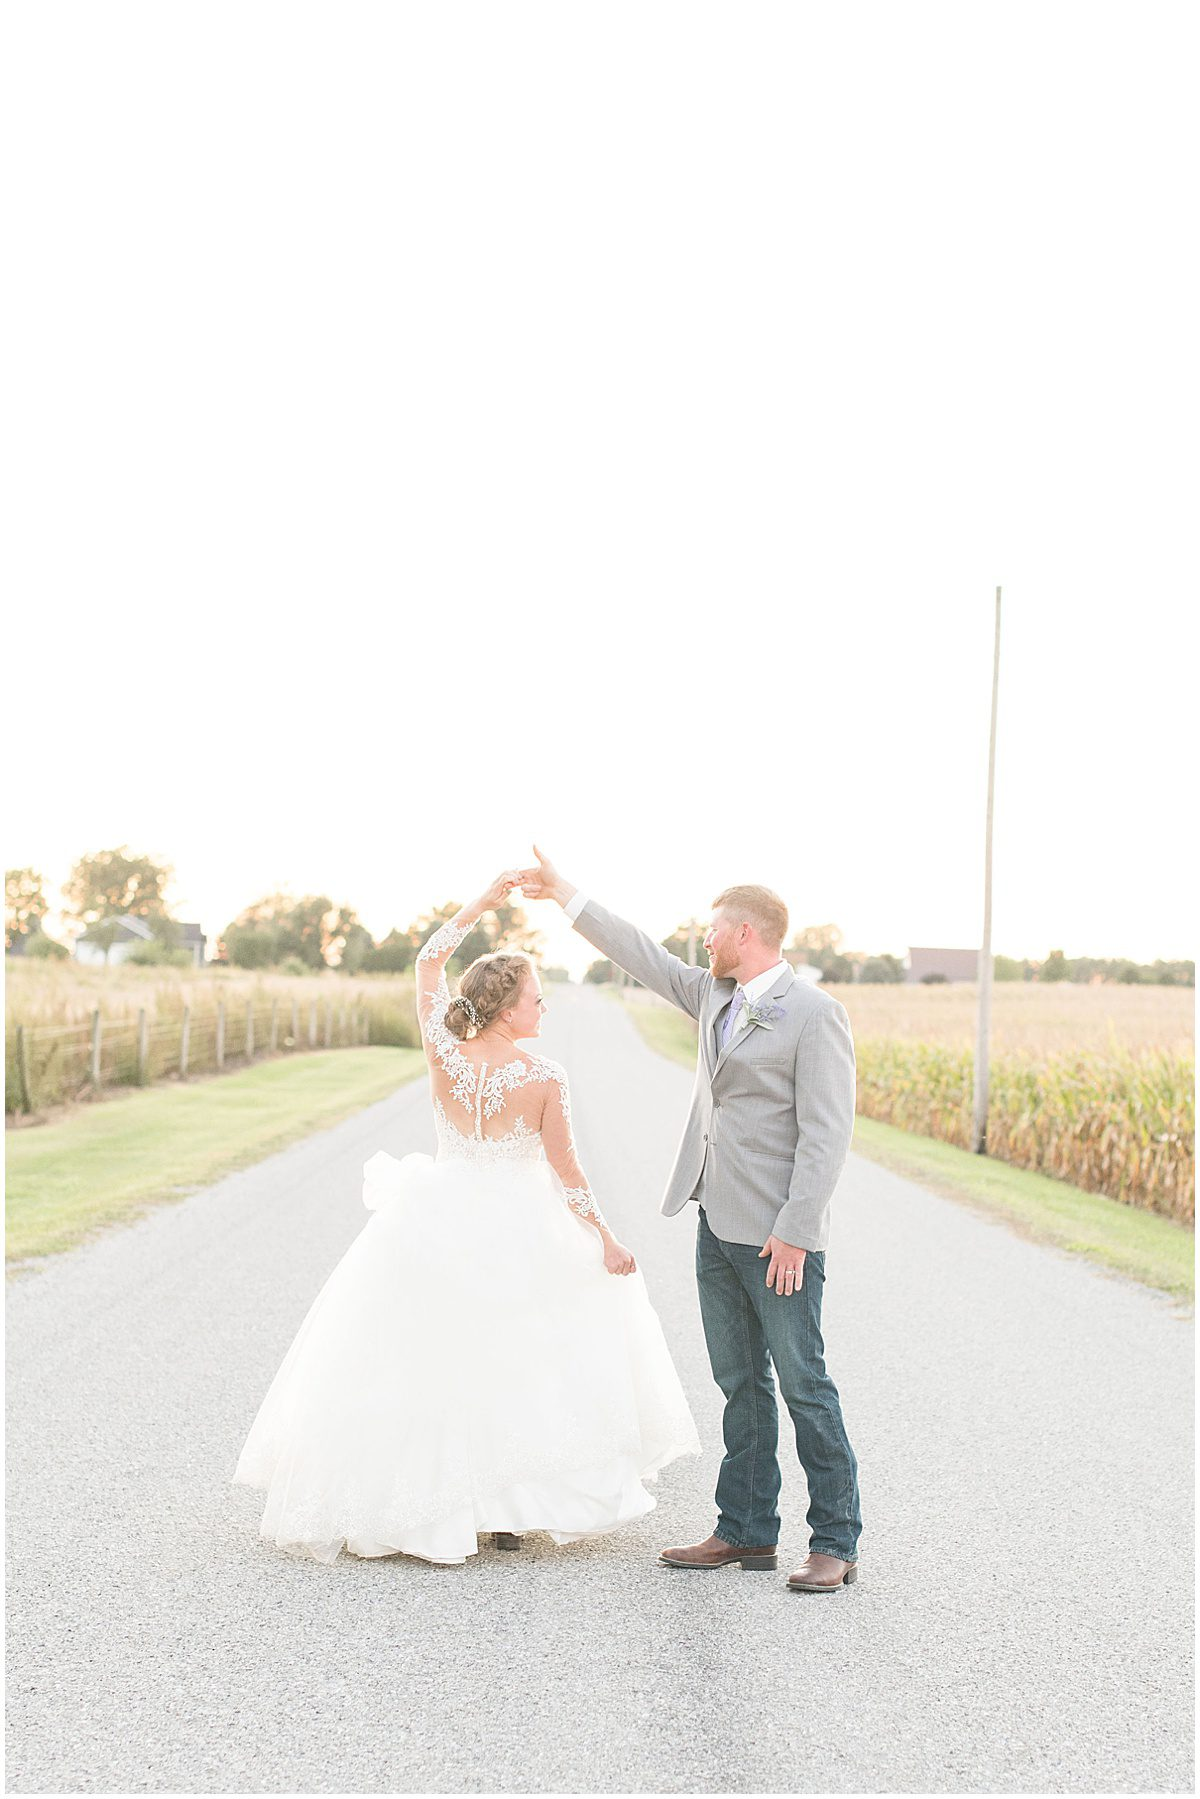 Just married photos after wedding at the Wagner Angus Barn in Wolcott, Indiana by Victoria Rayburn Photography